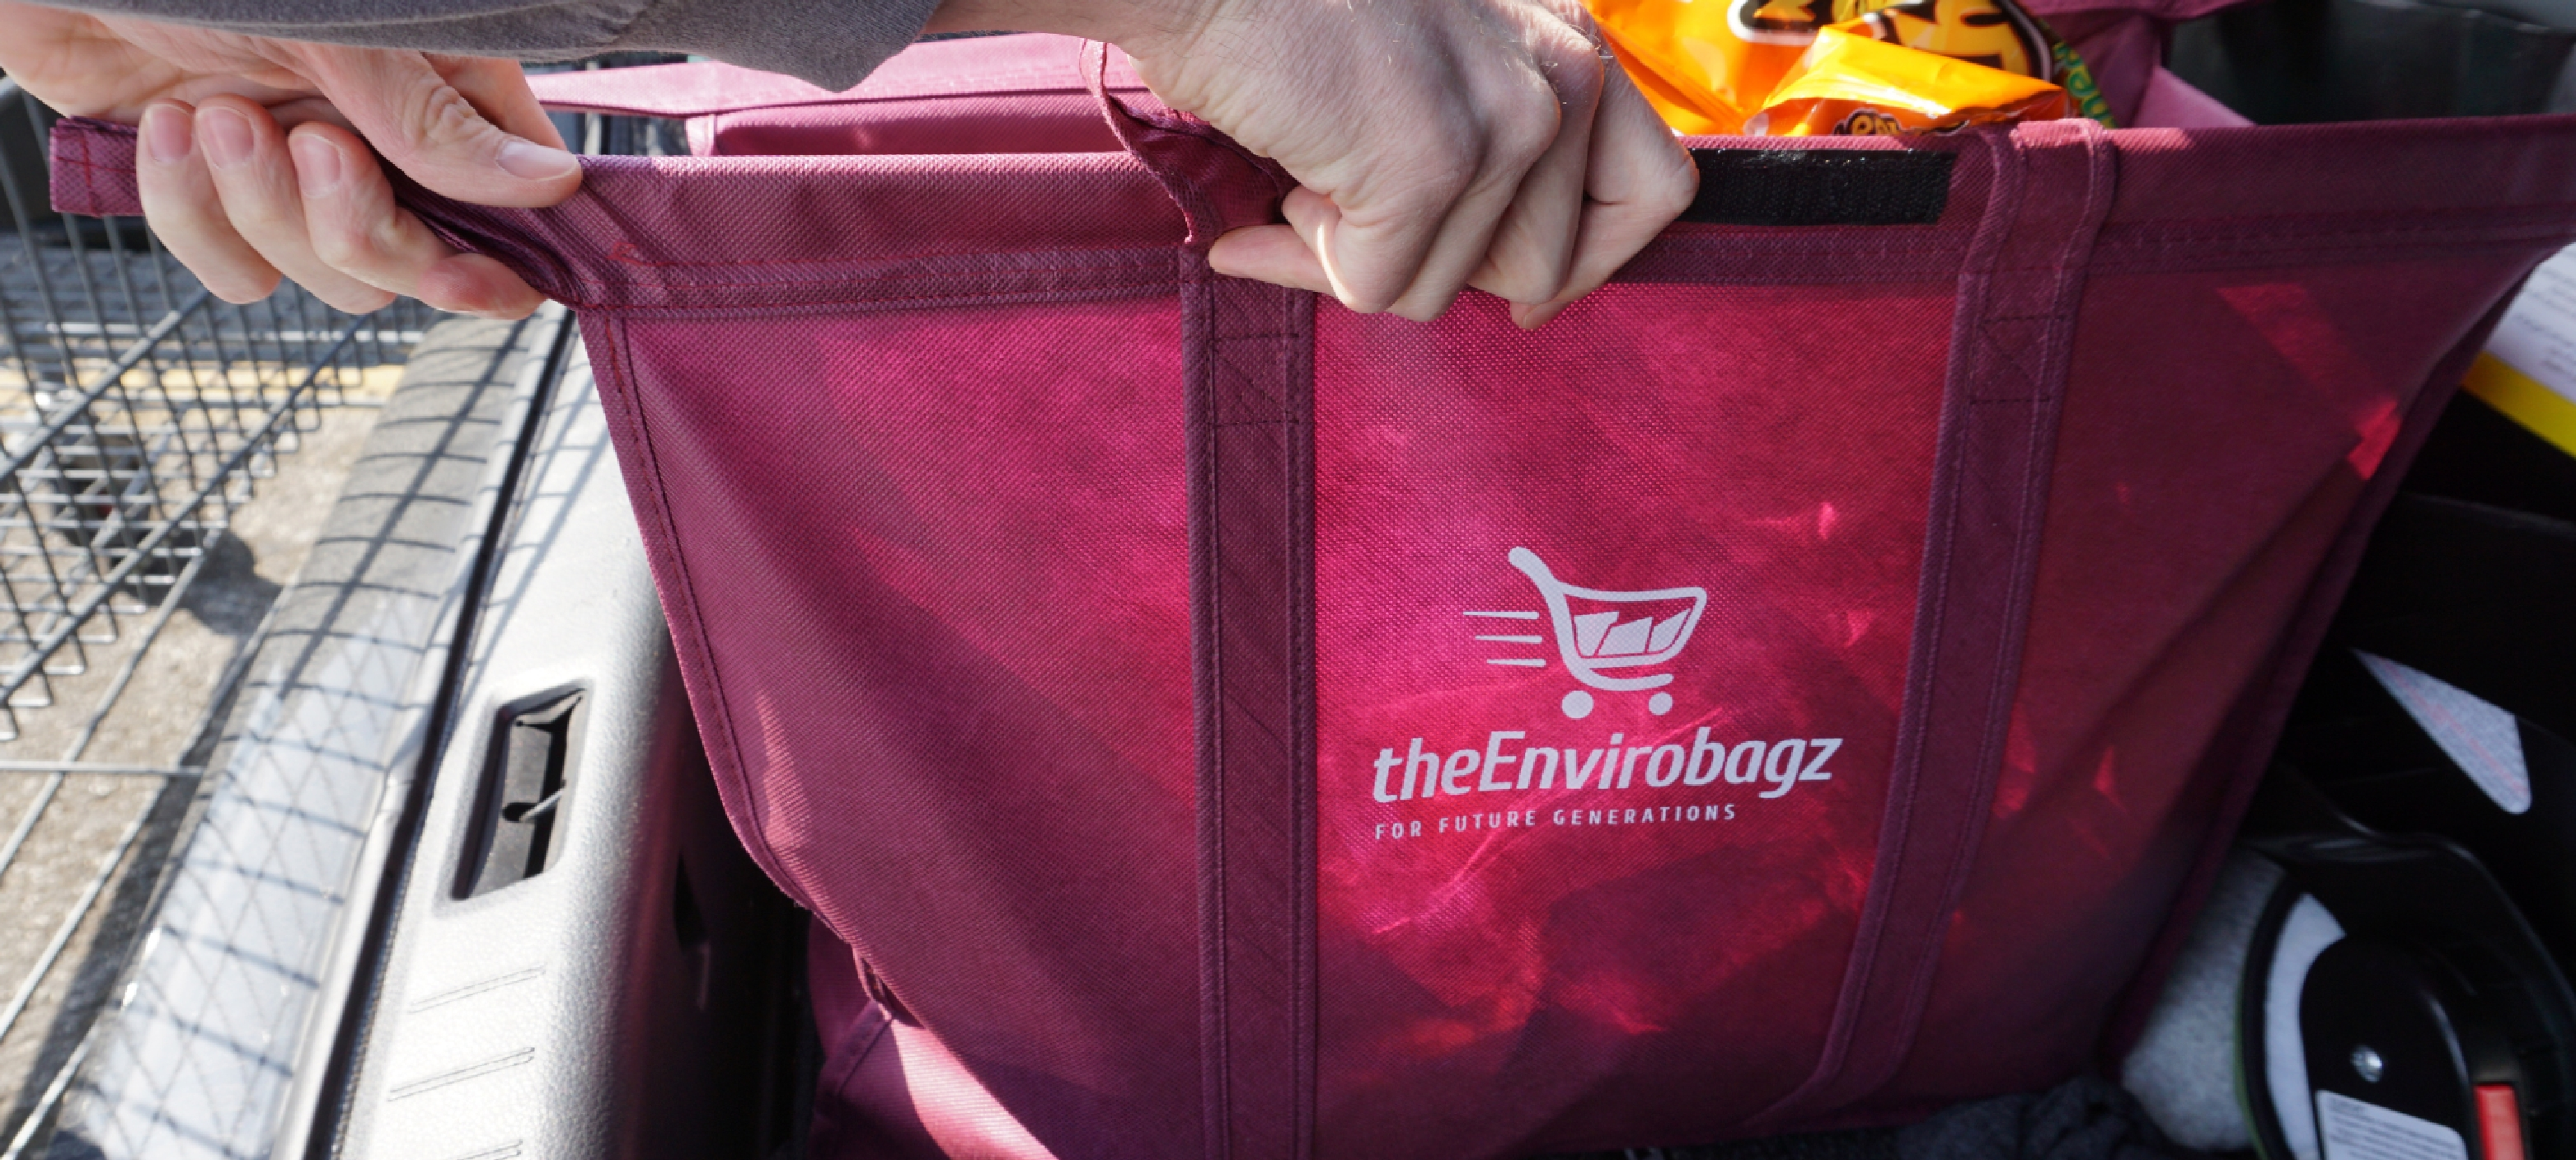 no plastic bags envirobagz reusable shopping bags